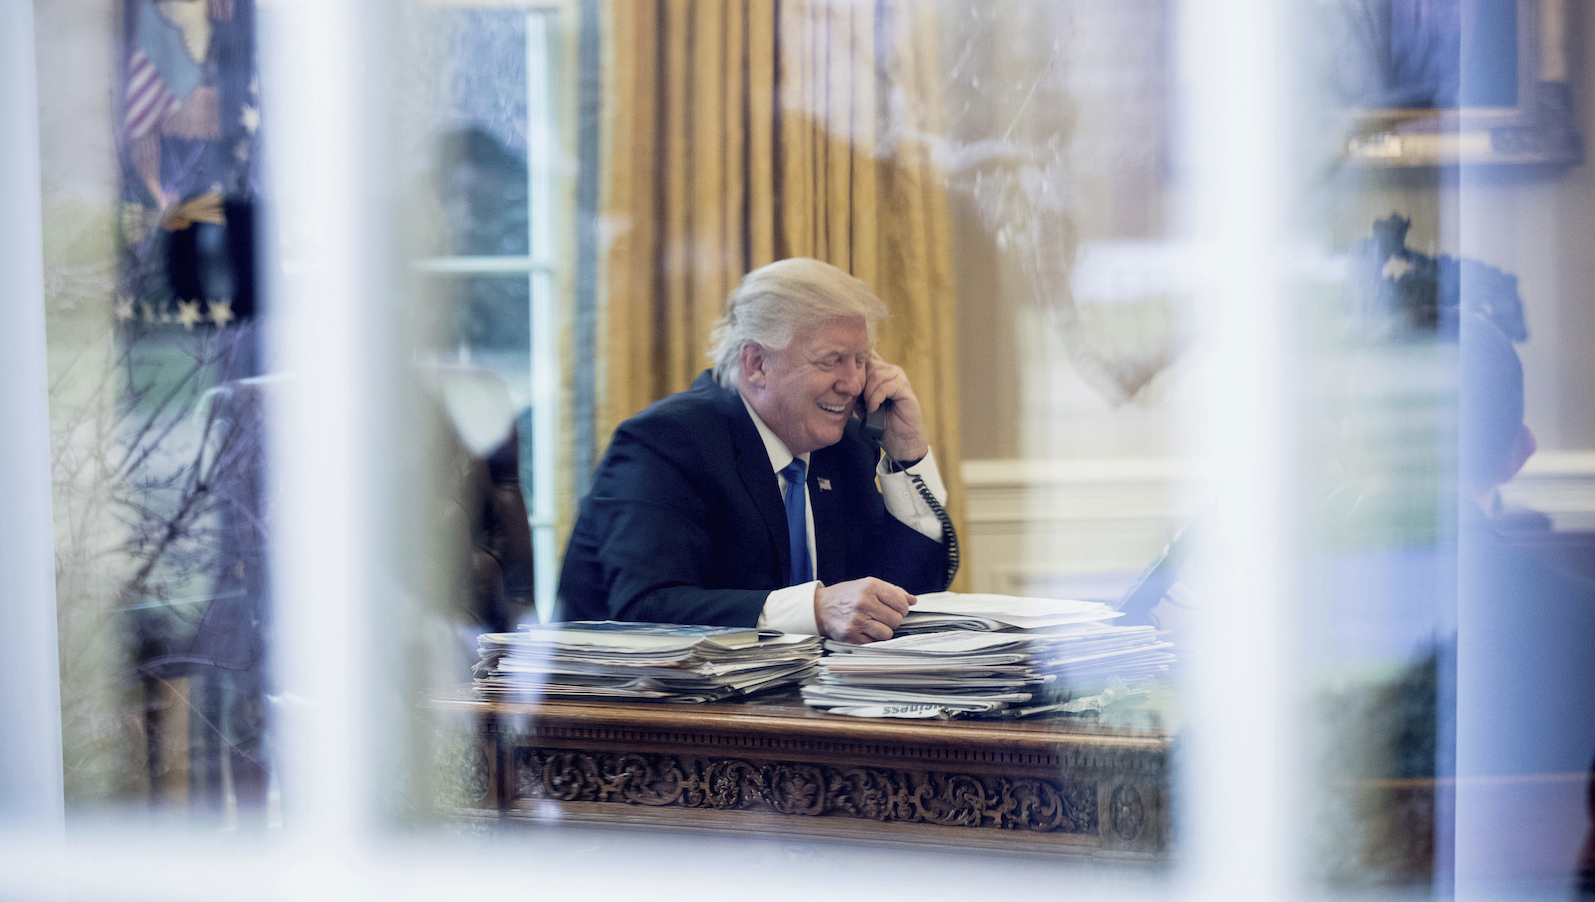 President Donald Trump speaks with German Chancellor Angela Merkel in the Oval Office at the White House in Washington, Saturday, Jan. 28, 2017. (AP Photo/Andrew Harnik)